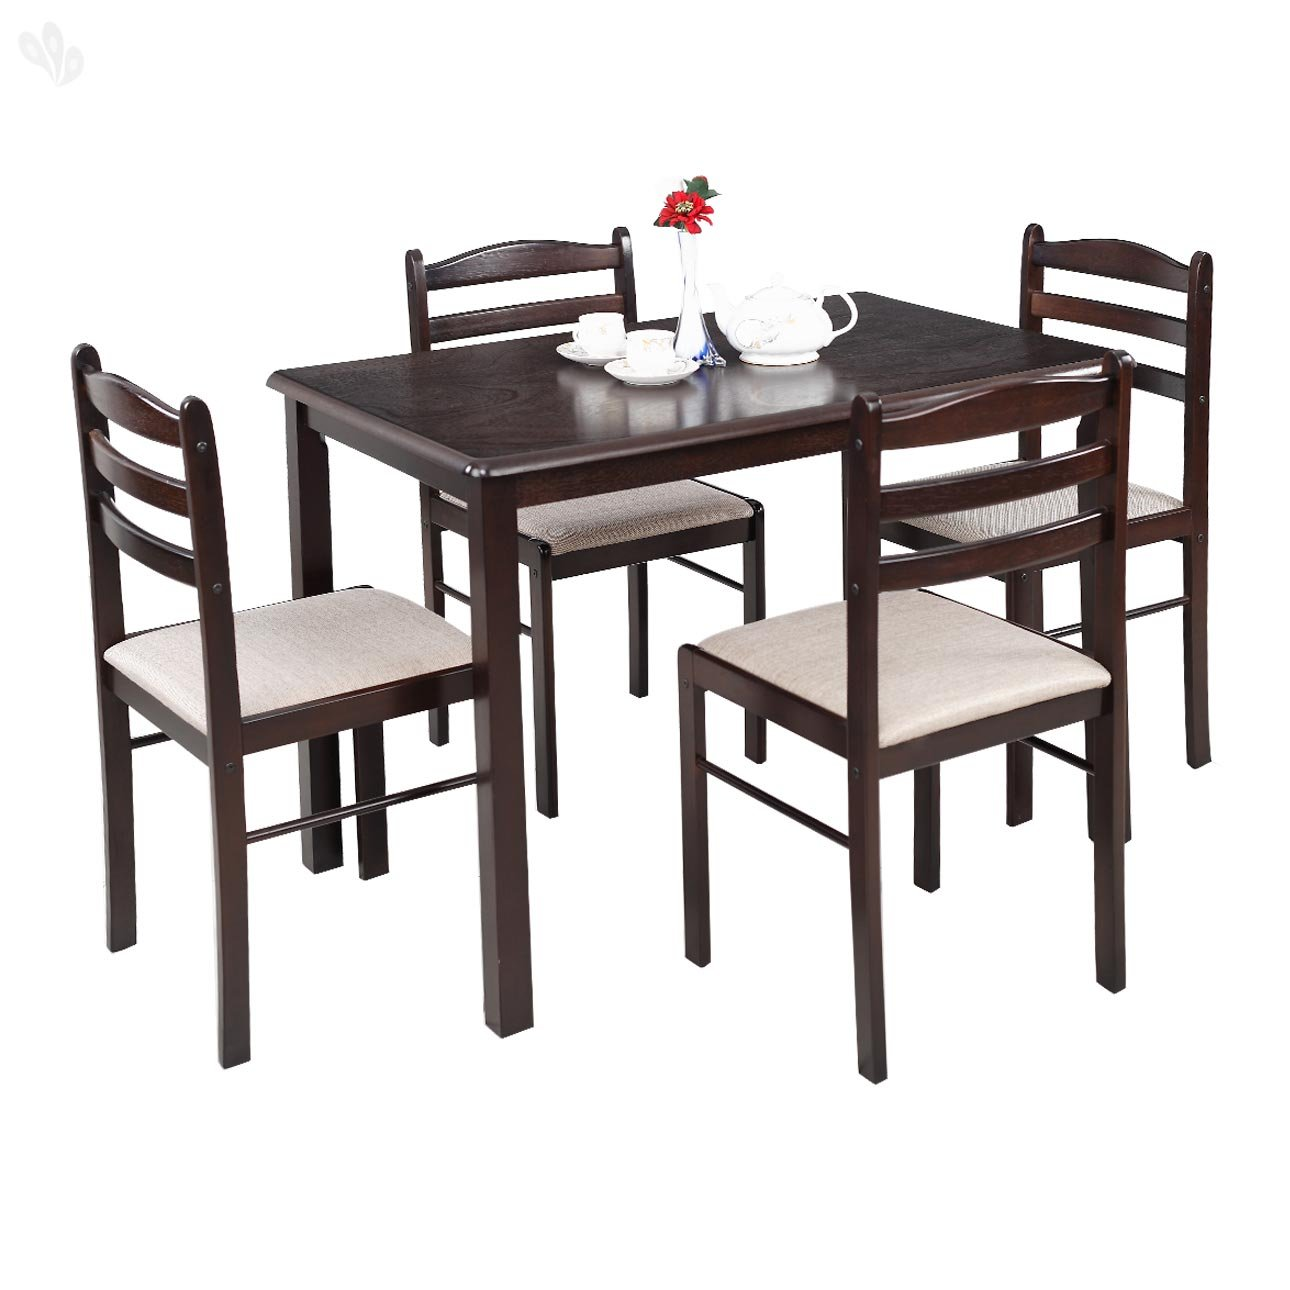 Royal oak hunter four seater dining table set dark brown for Kitchen set royal